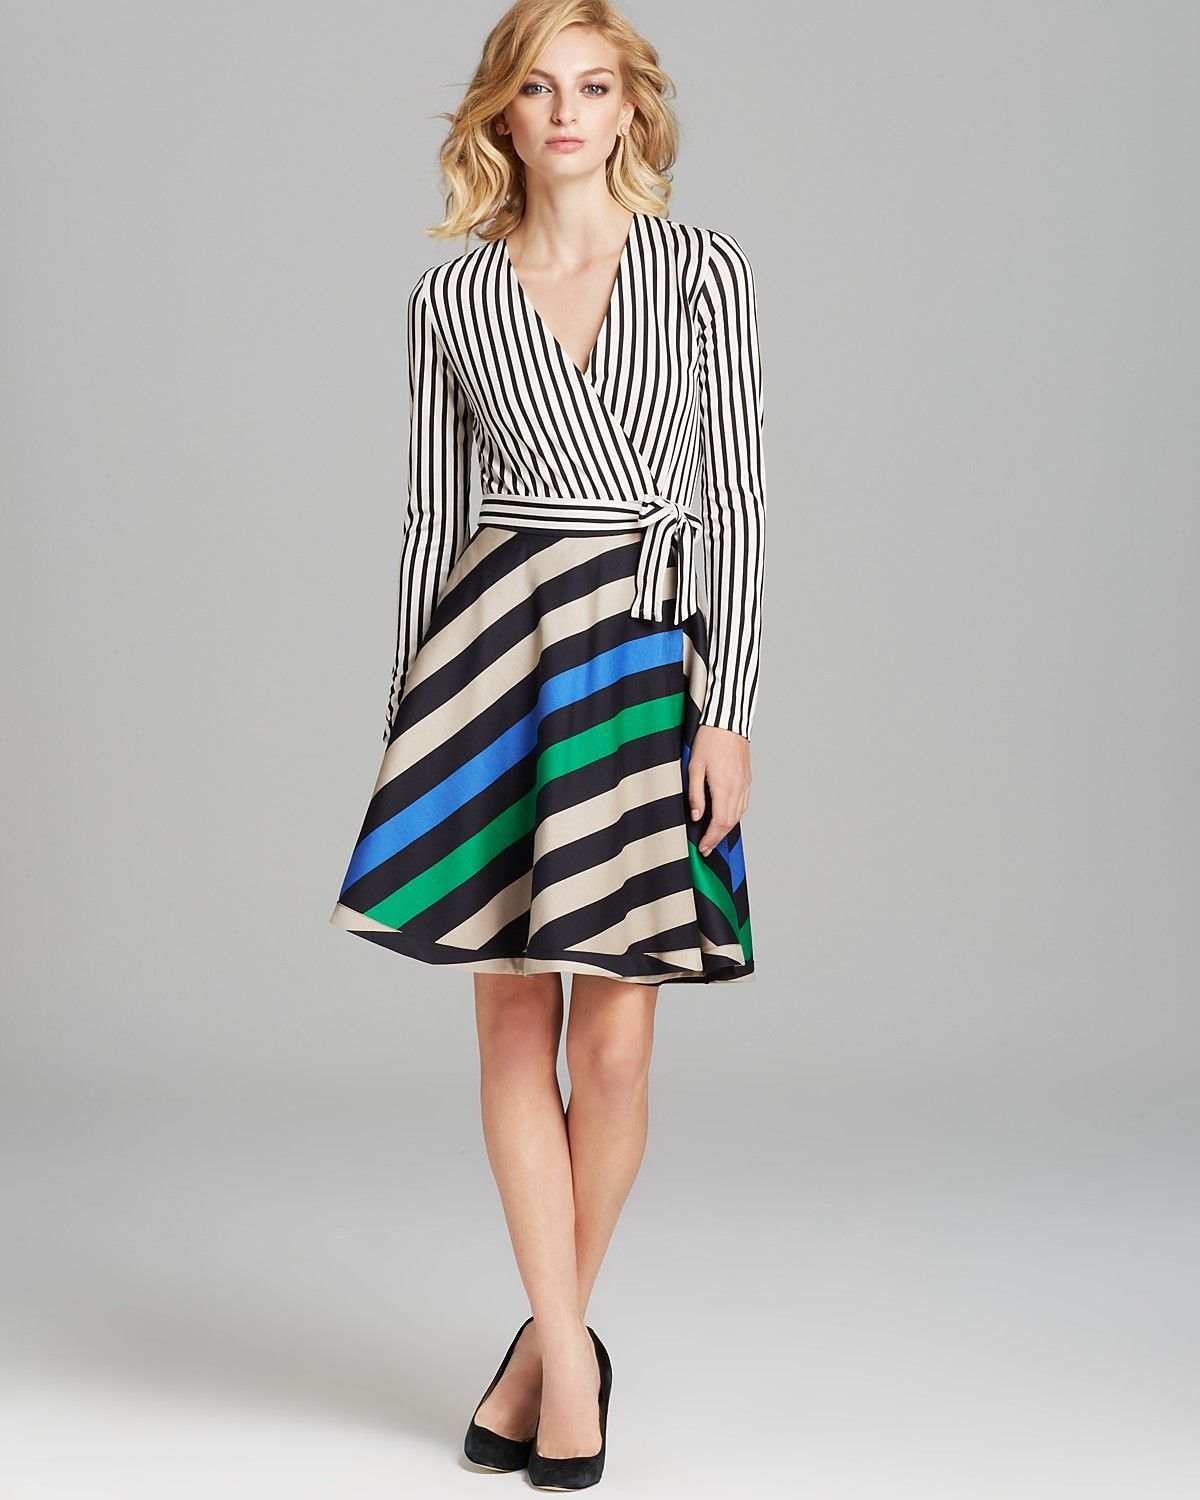 Perfect for office with a solid tight, preferably in a bright color ...